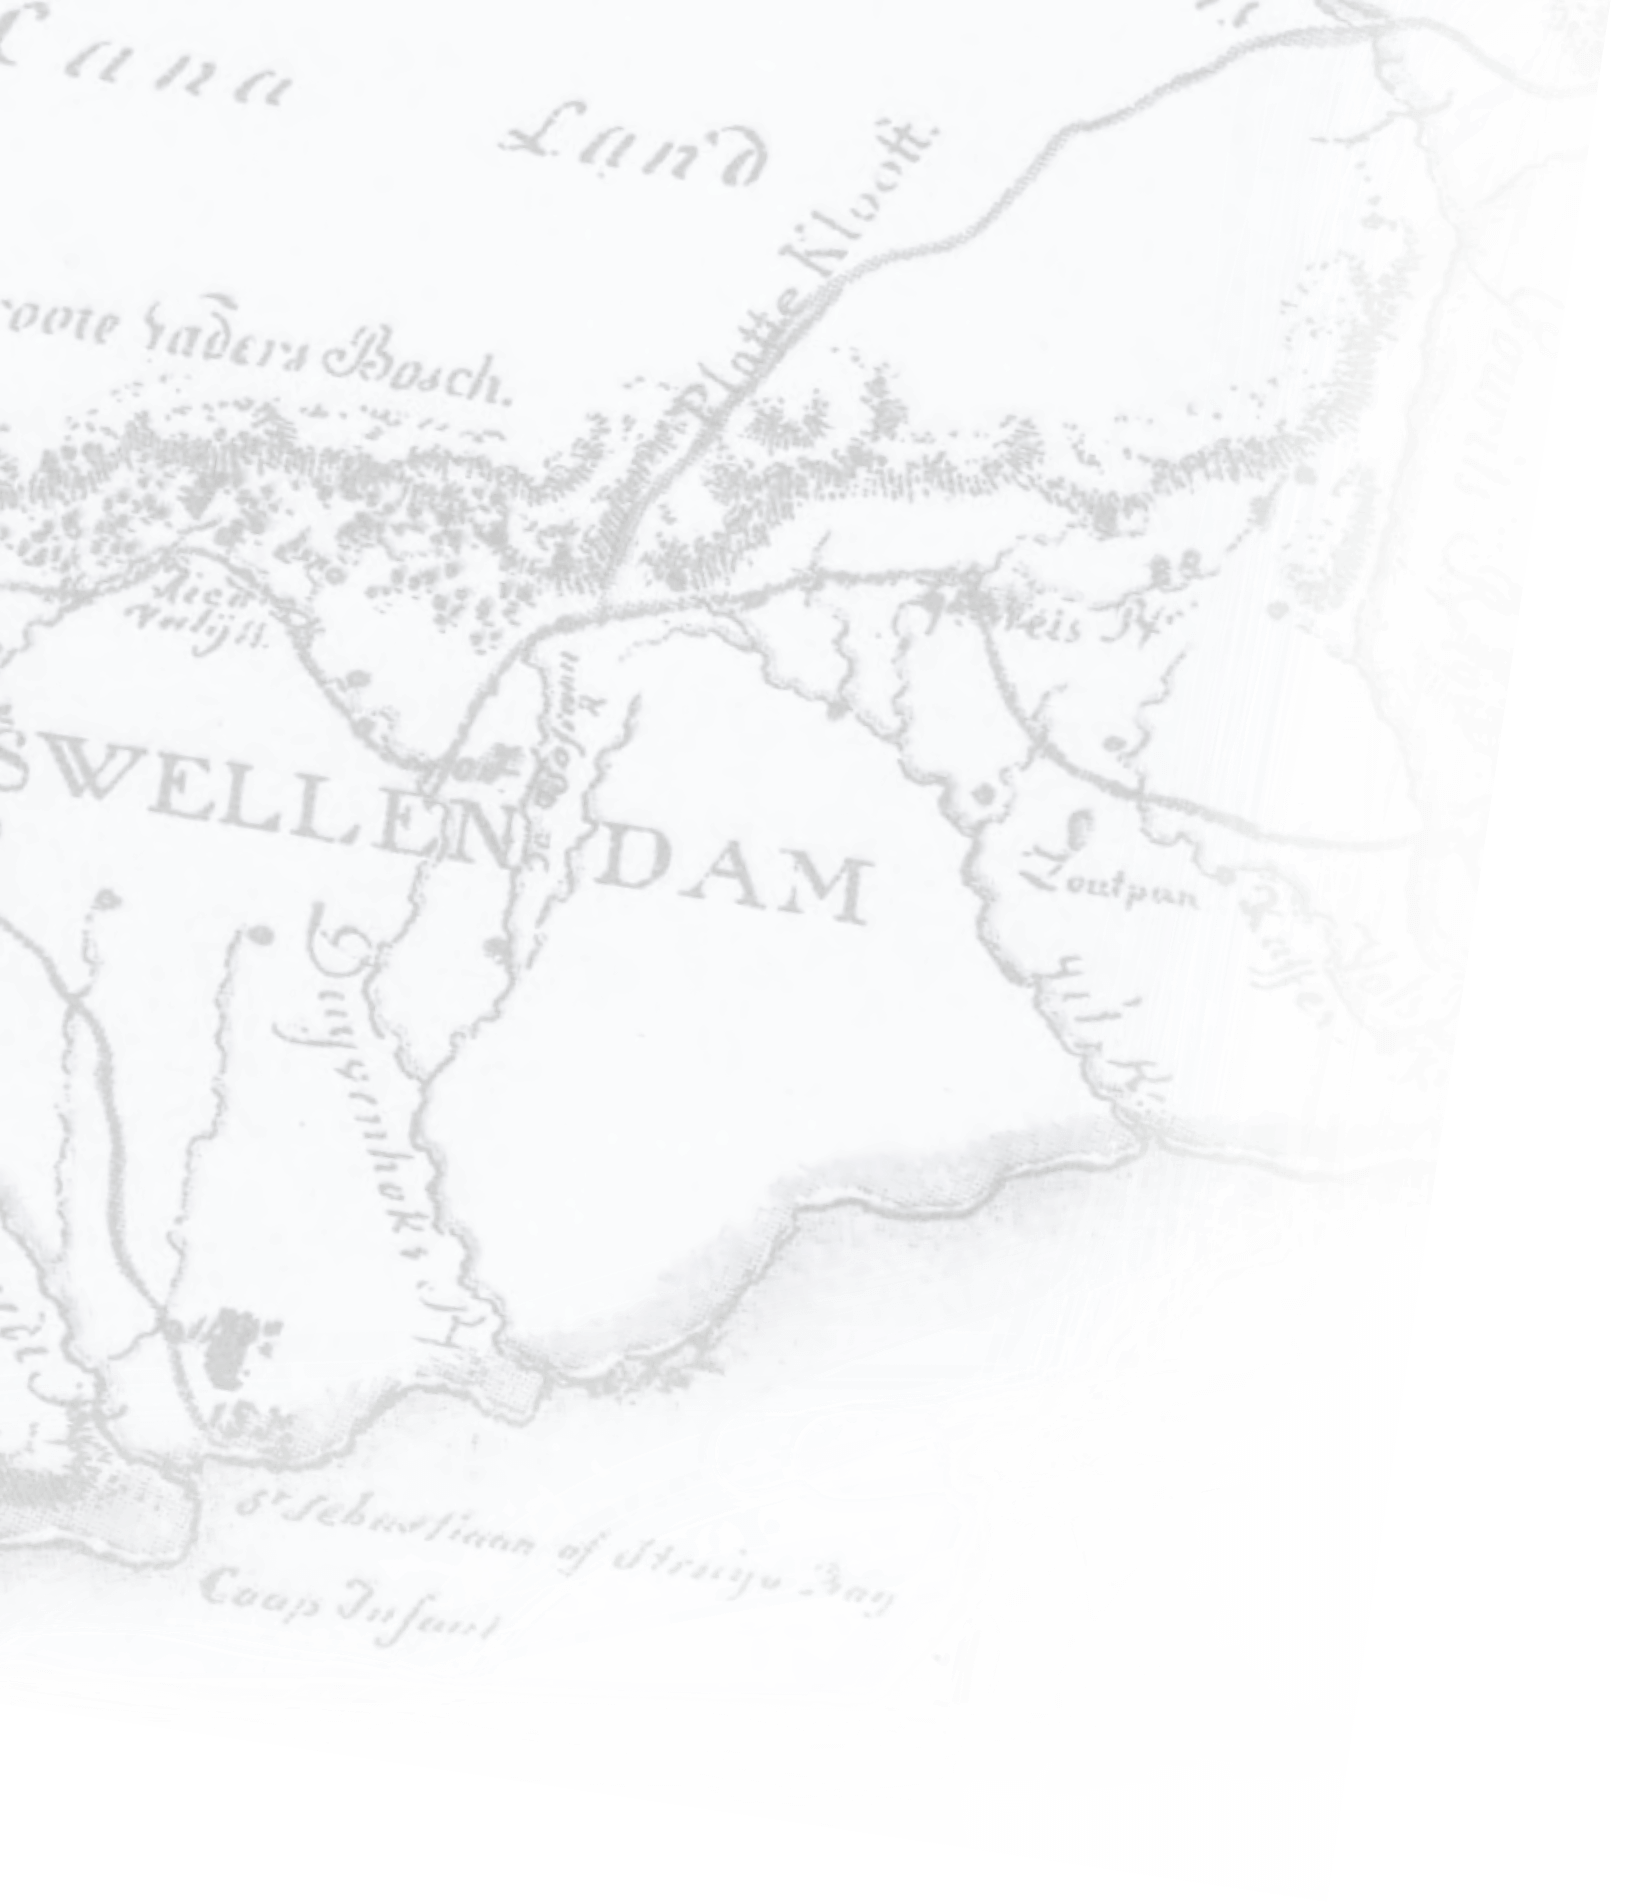 Old map of South Africa showing Swellendam.